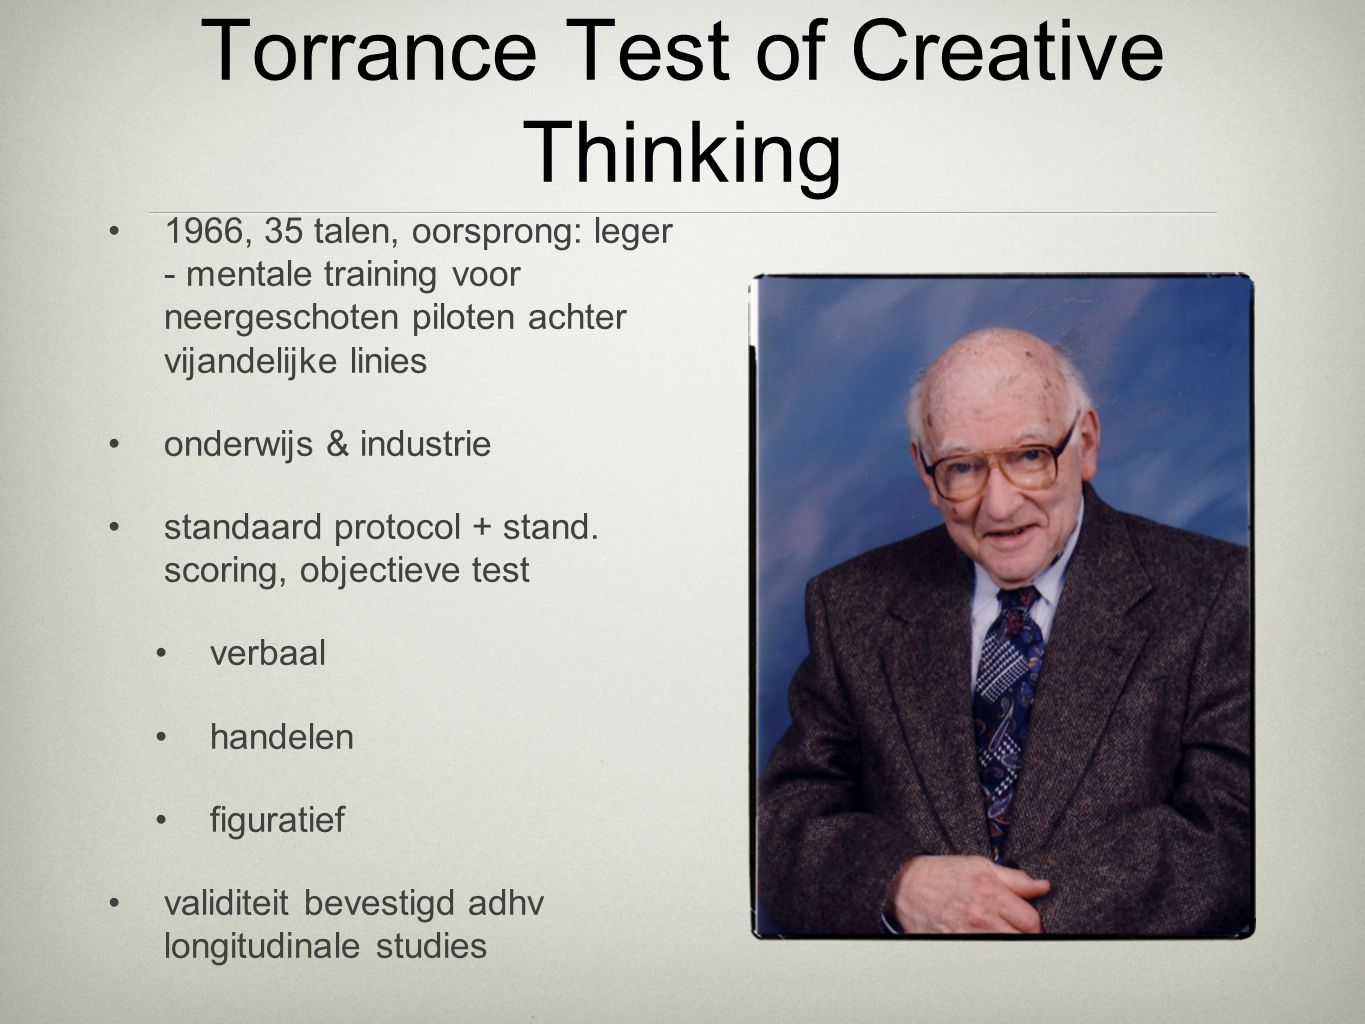 Torrance Test of Creative Thinking